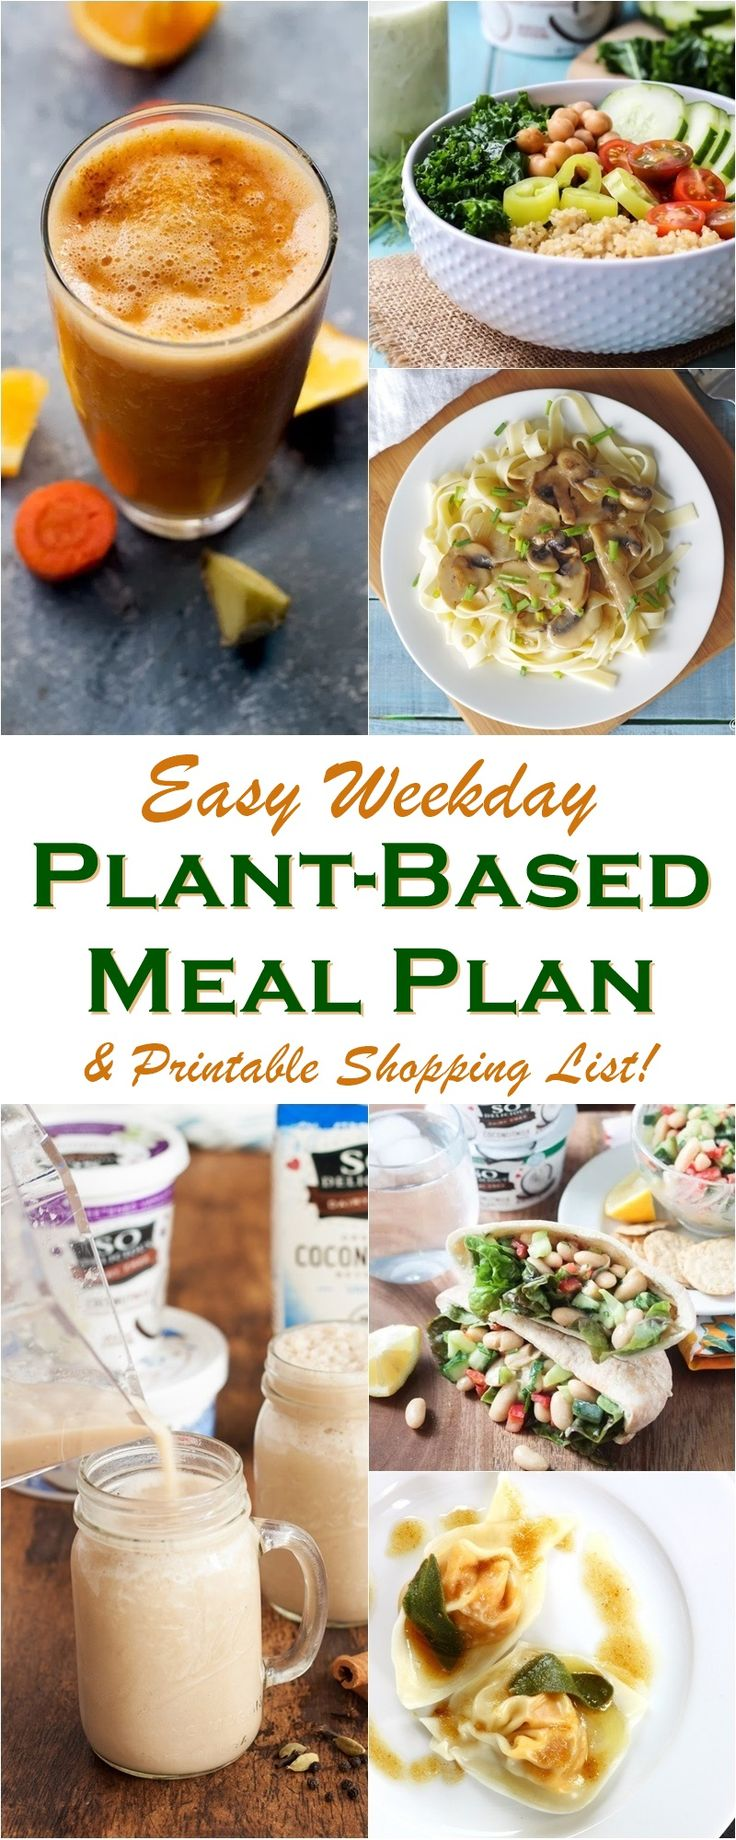 Easy weekday plant based meal plan shopping list - La cuisine des mousquetaires anguille ...